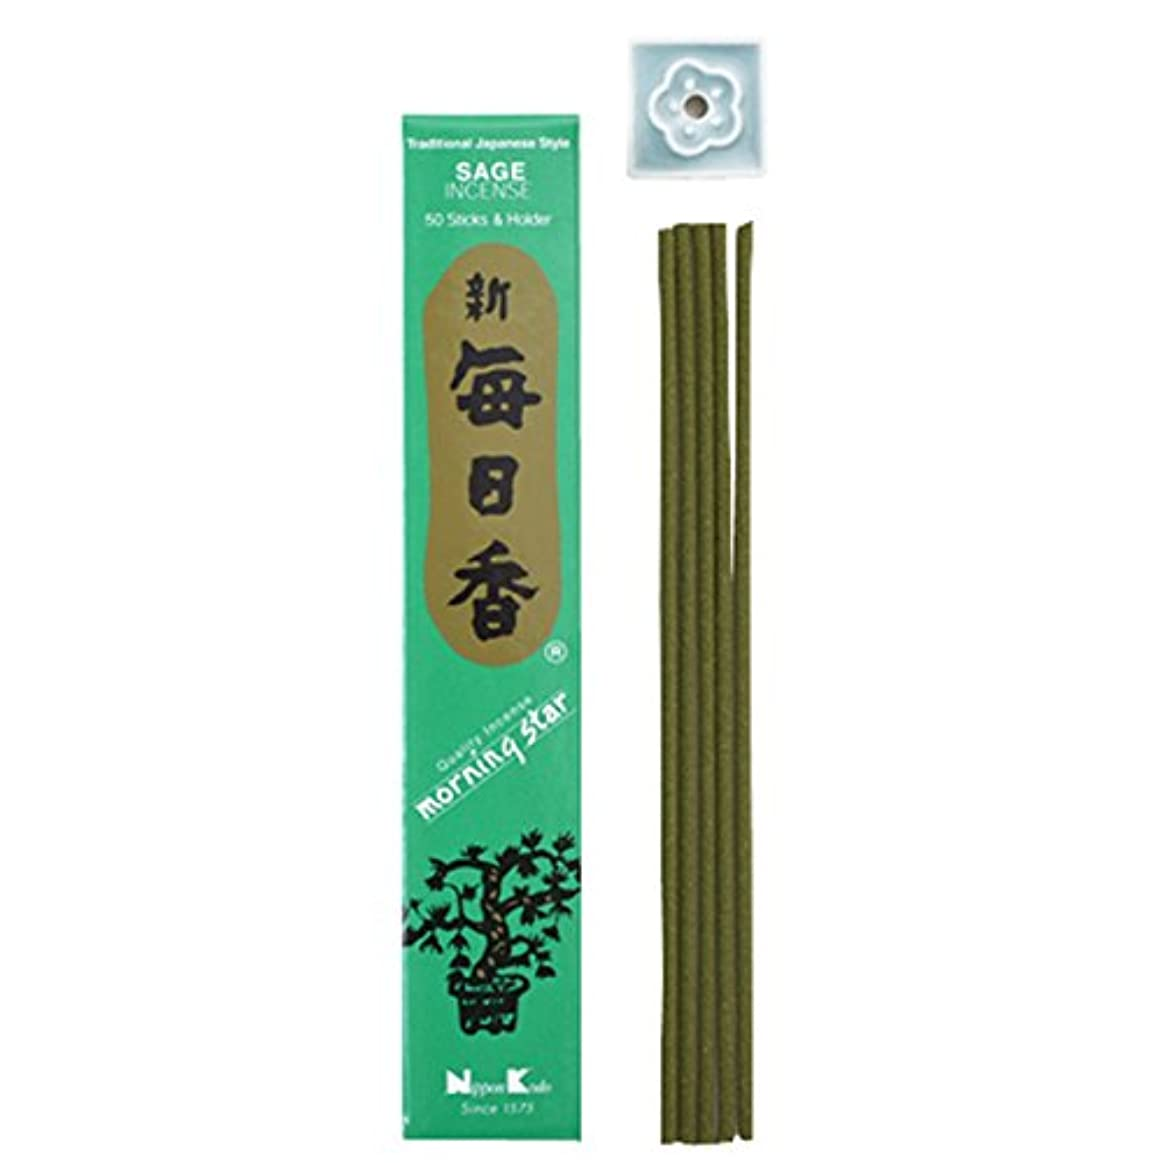 戦術代わって川Morning Star Japanese Incense Sticks Sage 50 Sticks &ホルダー'